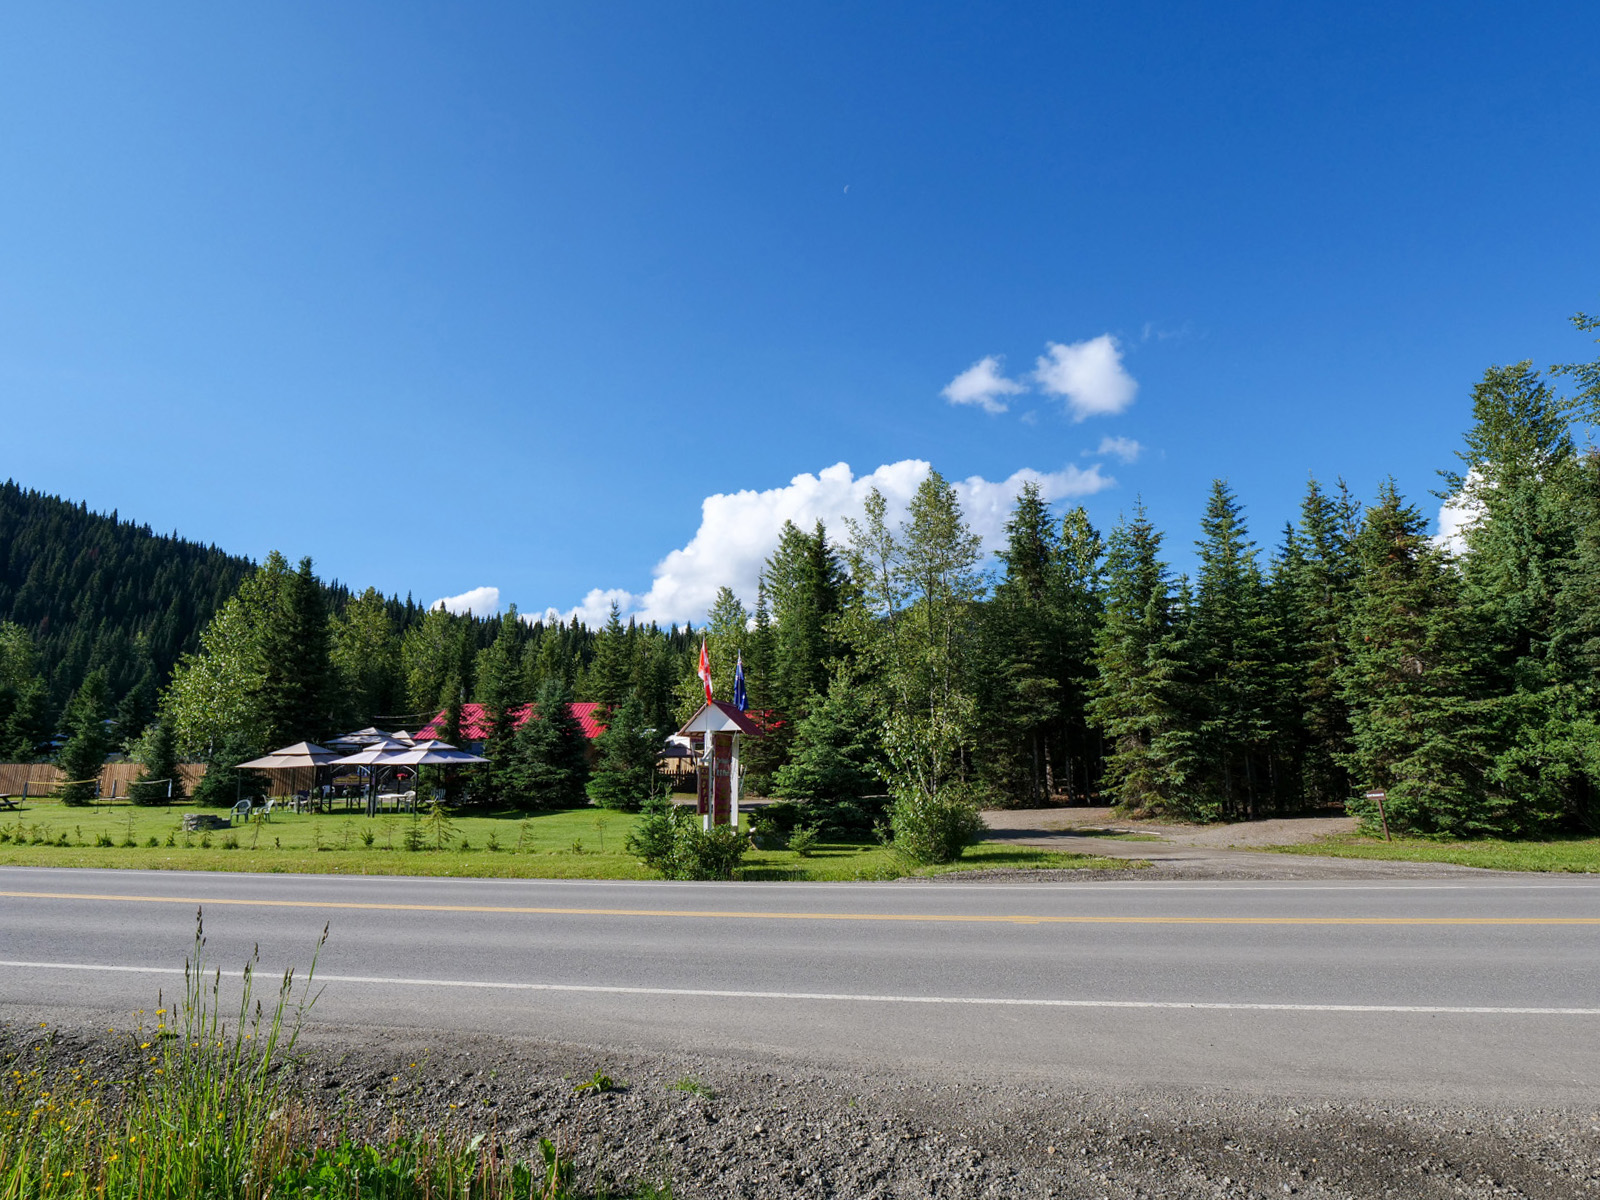 Cariboo joy rv park 03